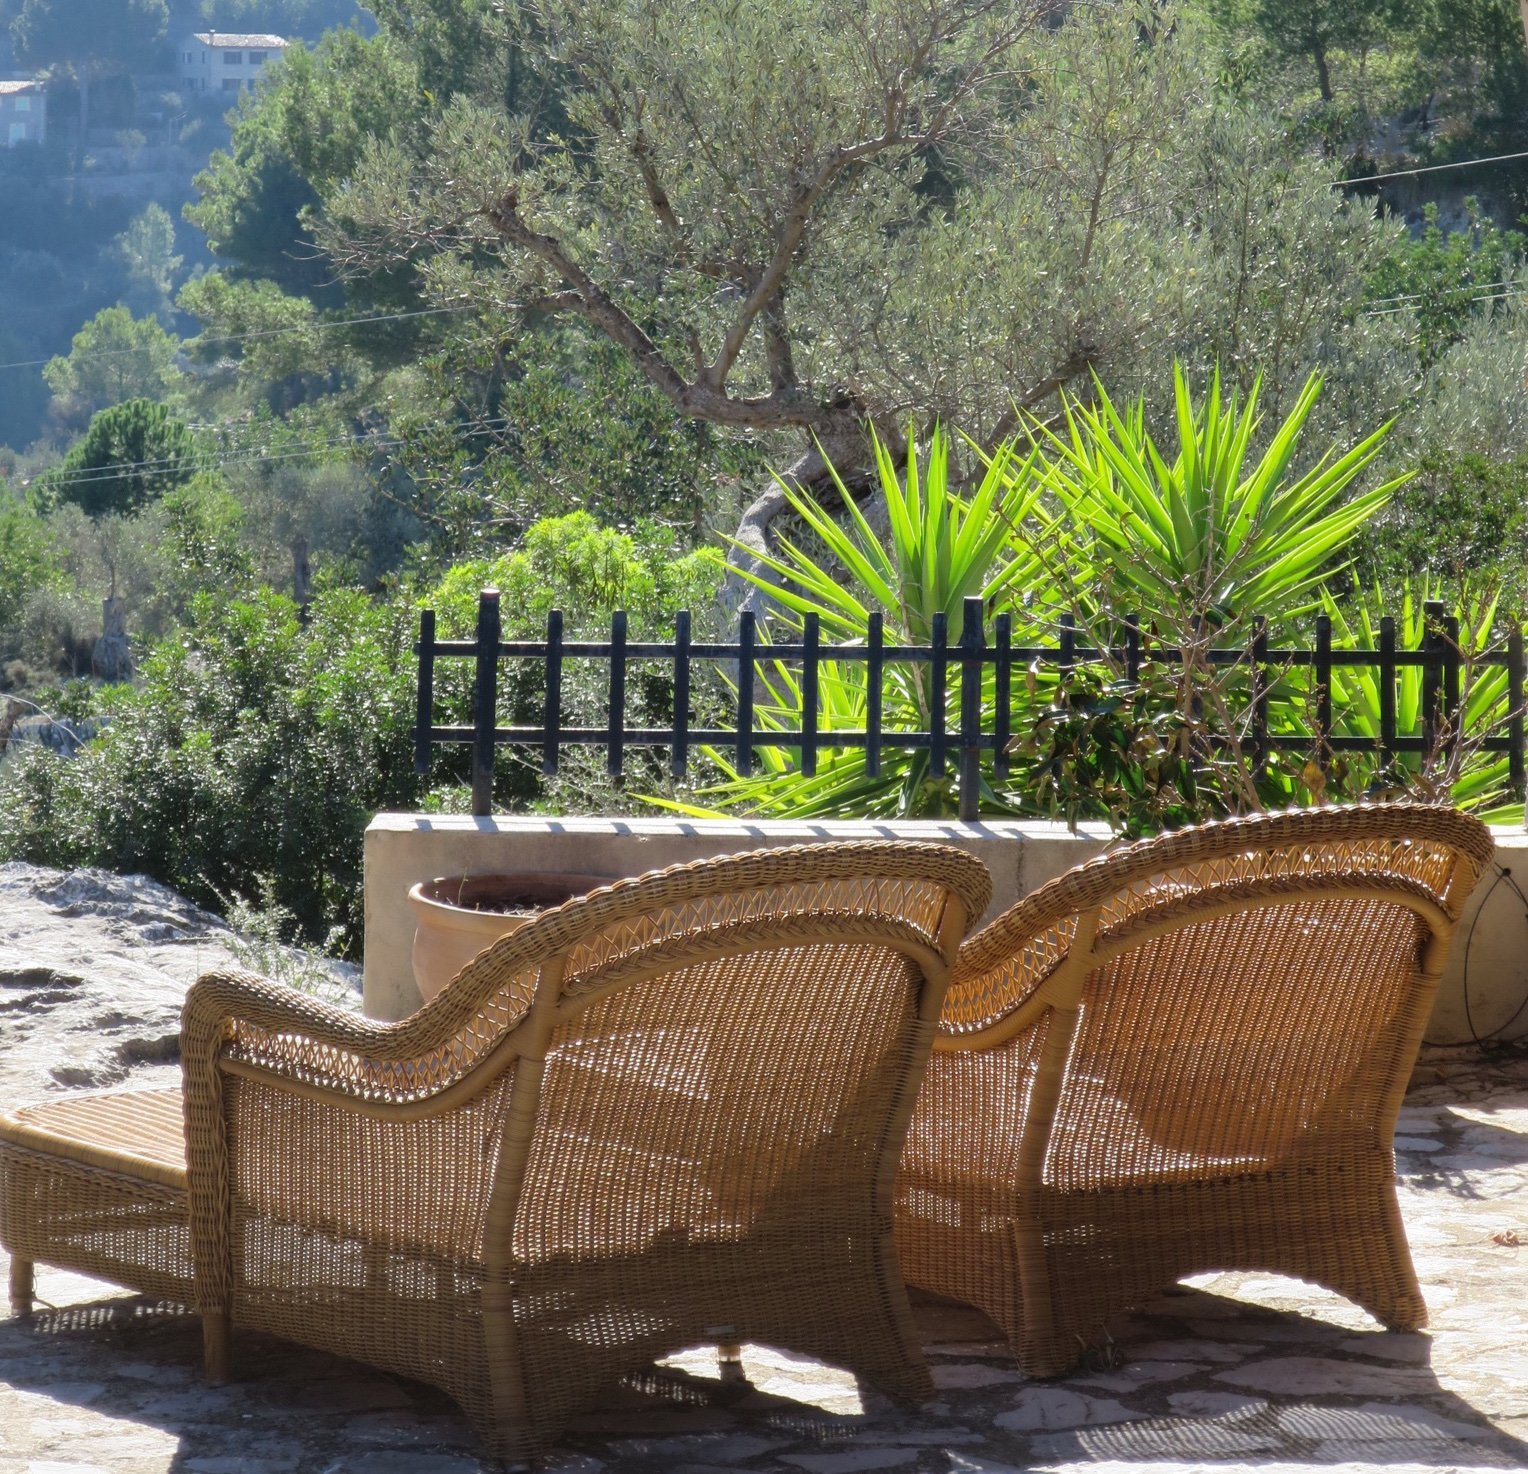 Take time for yourself on the sunbeds Sa Pedrissa Agroturismo - Deia - Mallorca